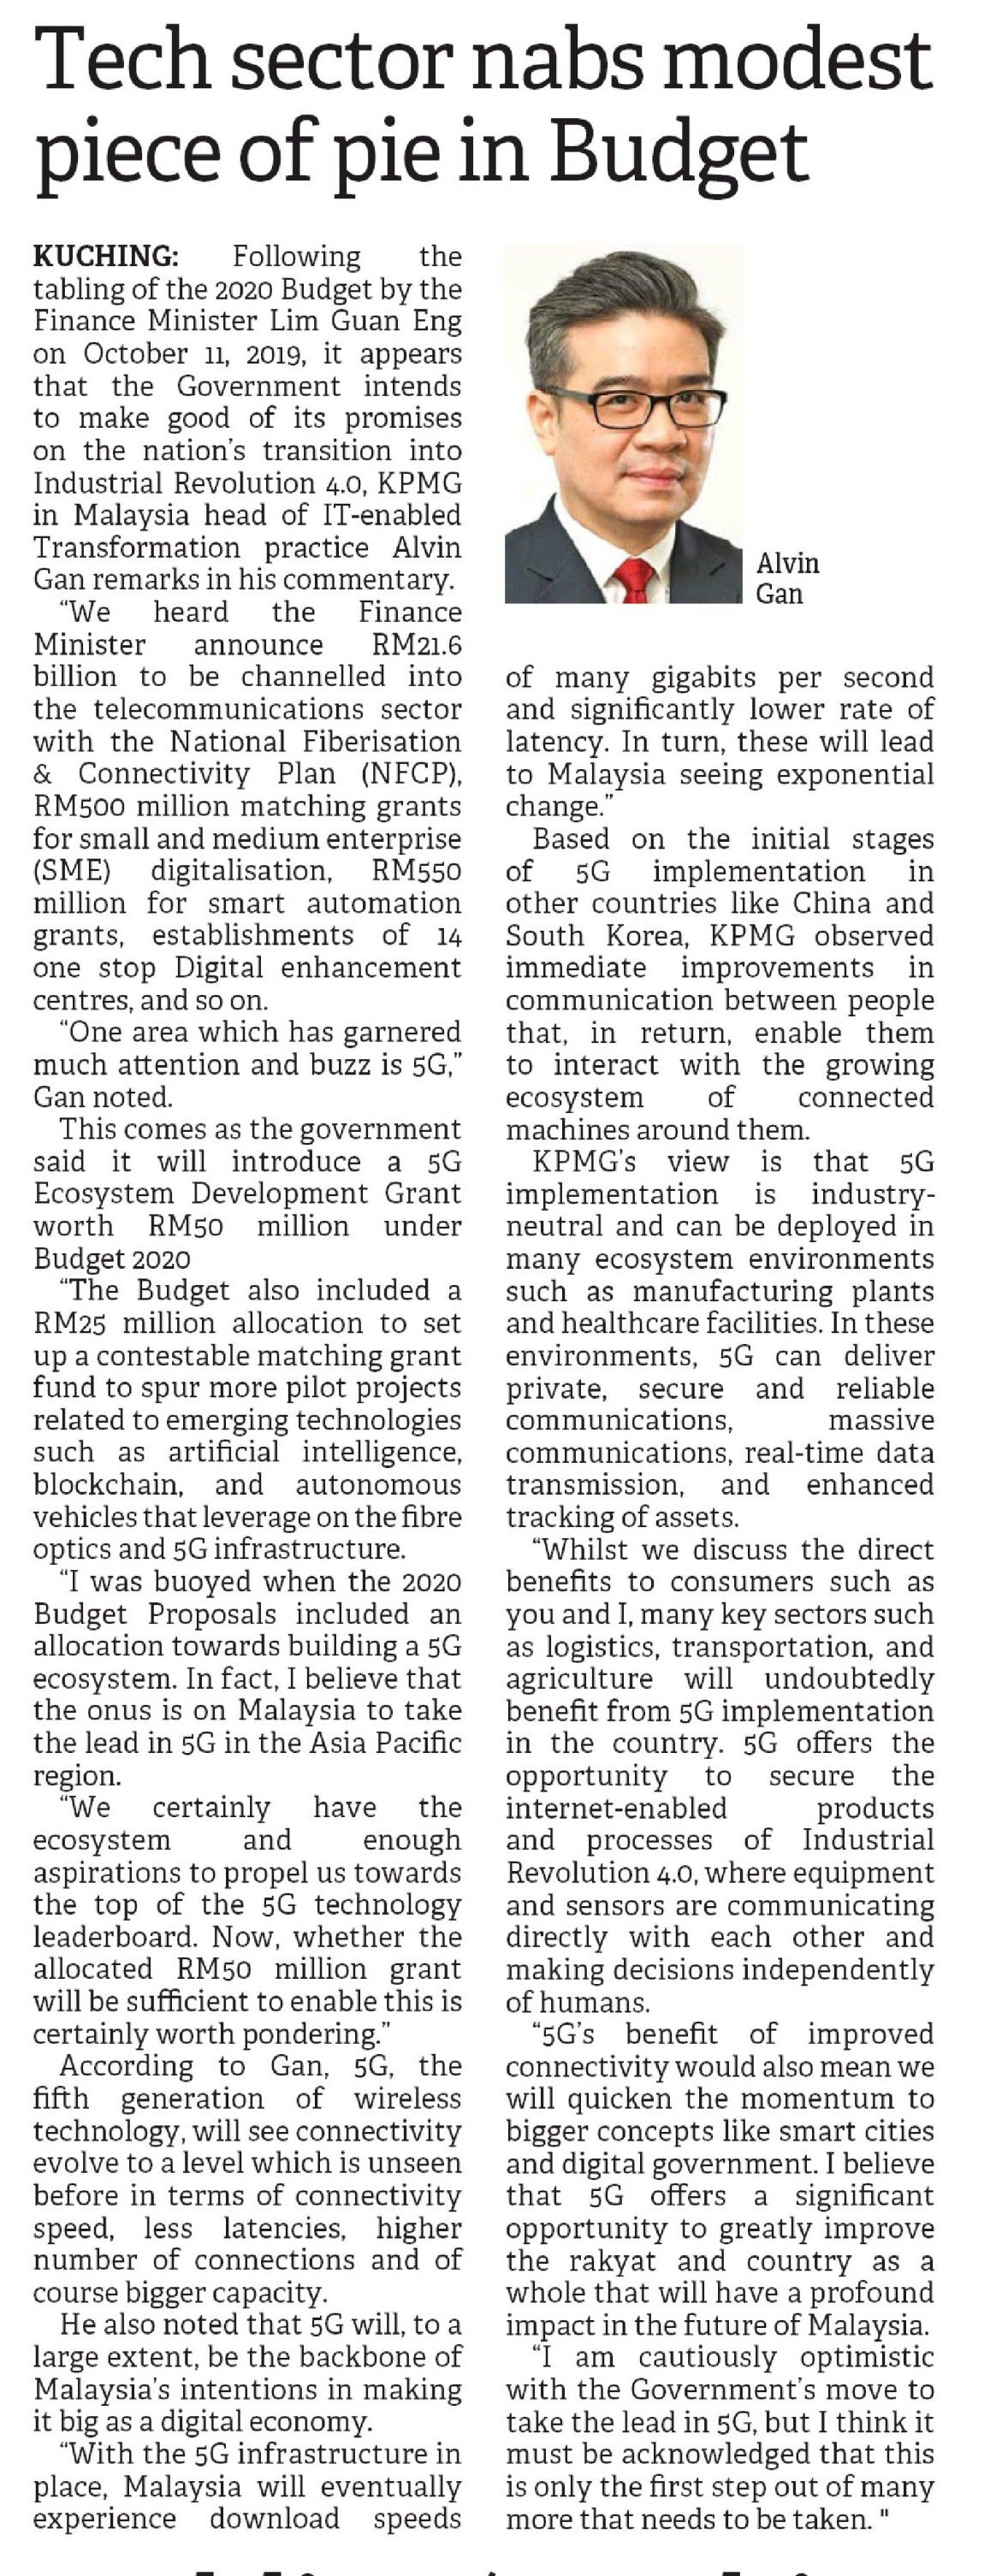 Tech sector nabs modest piece of pie in Budget